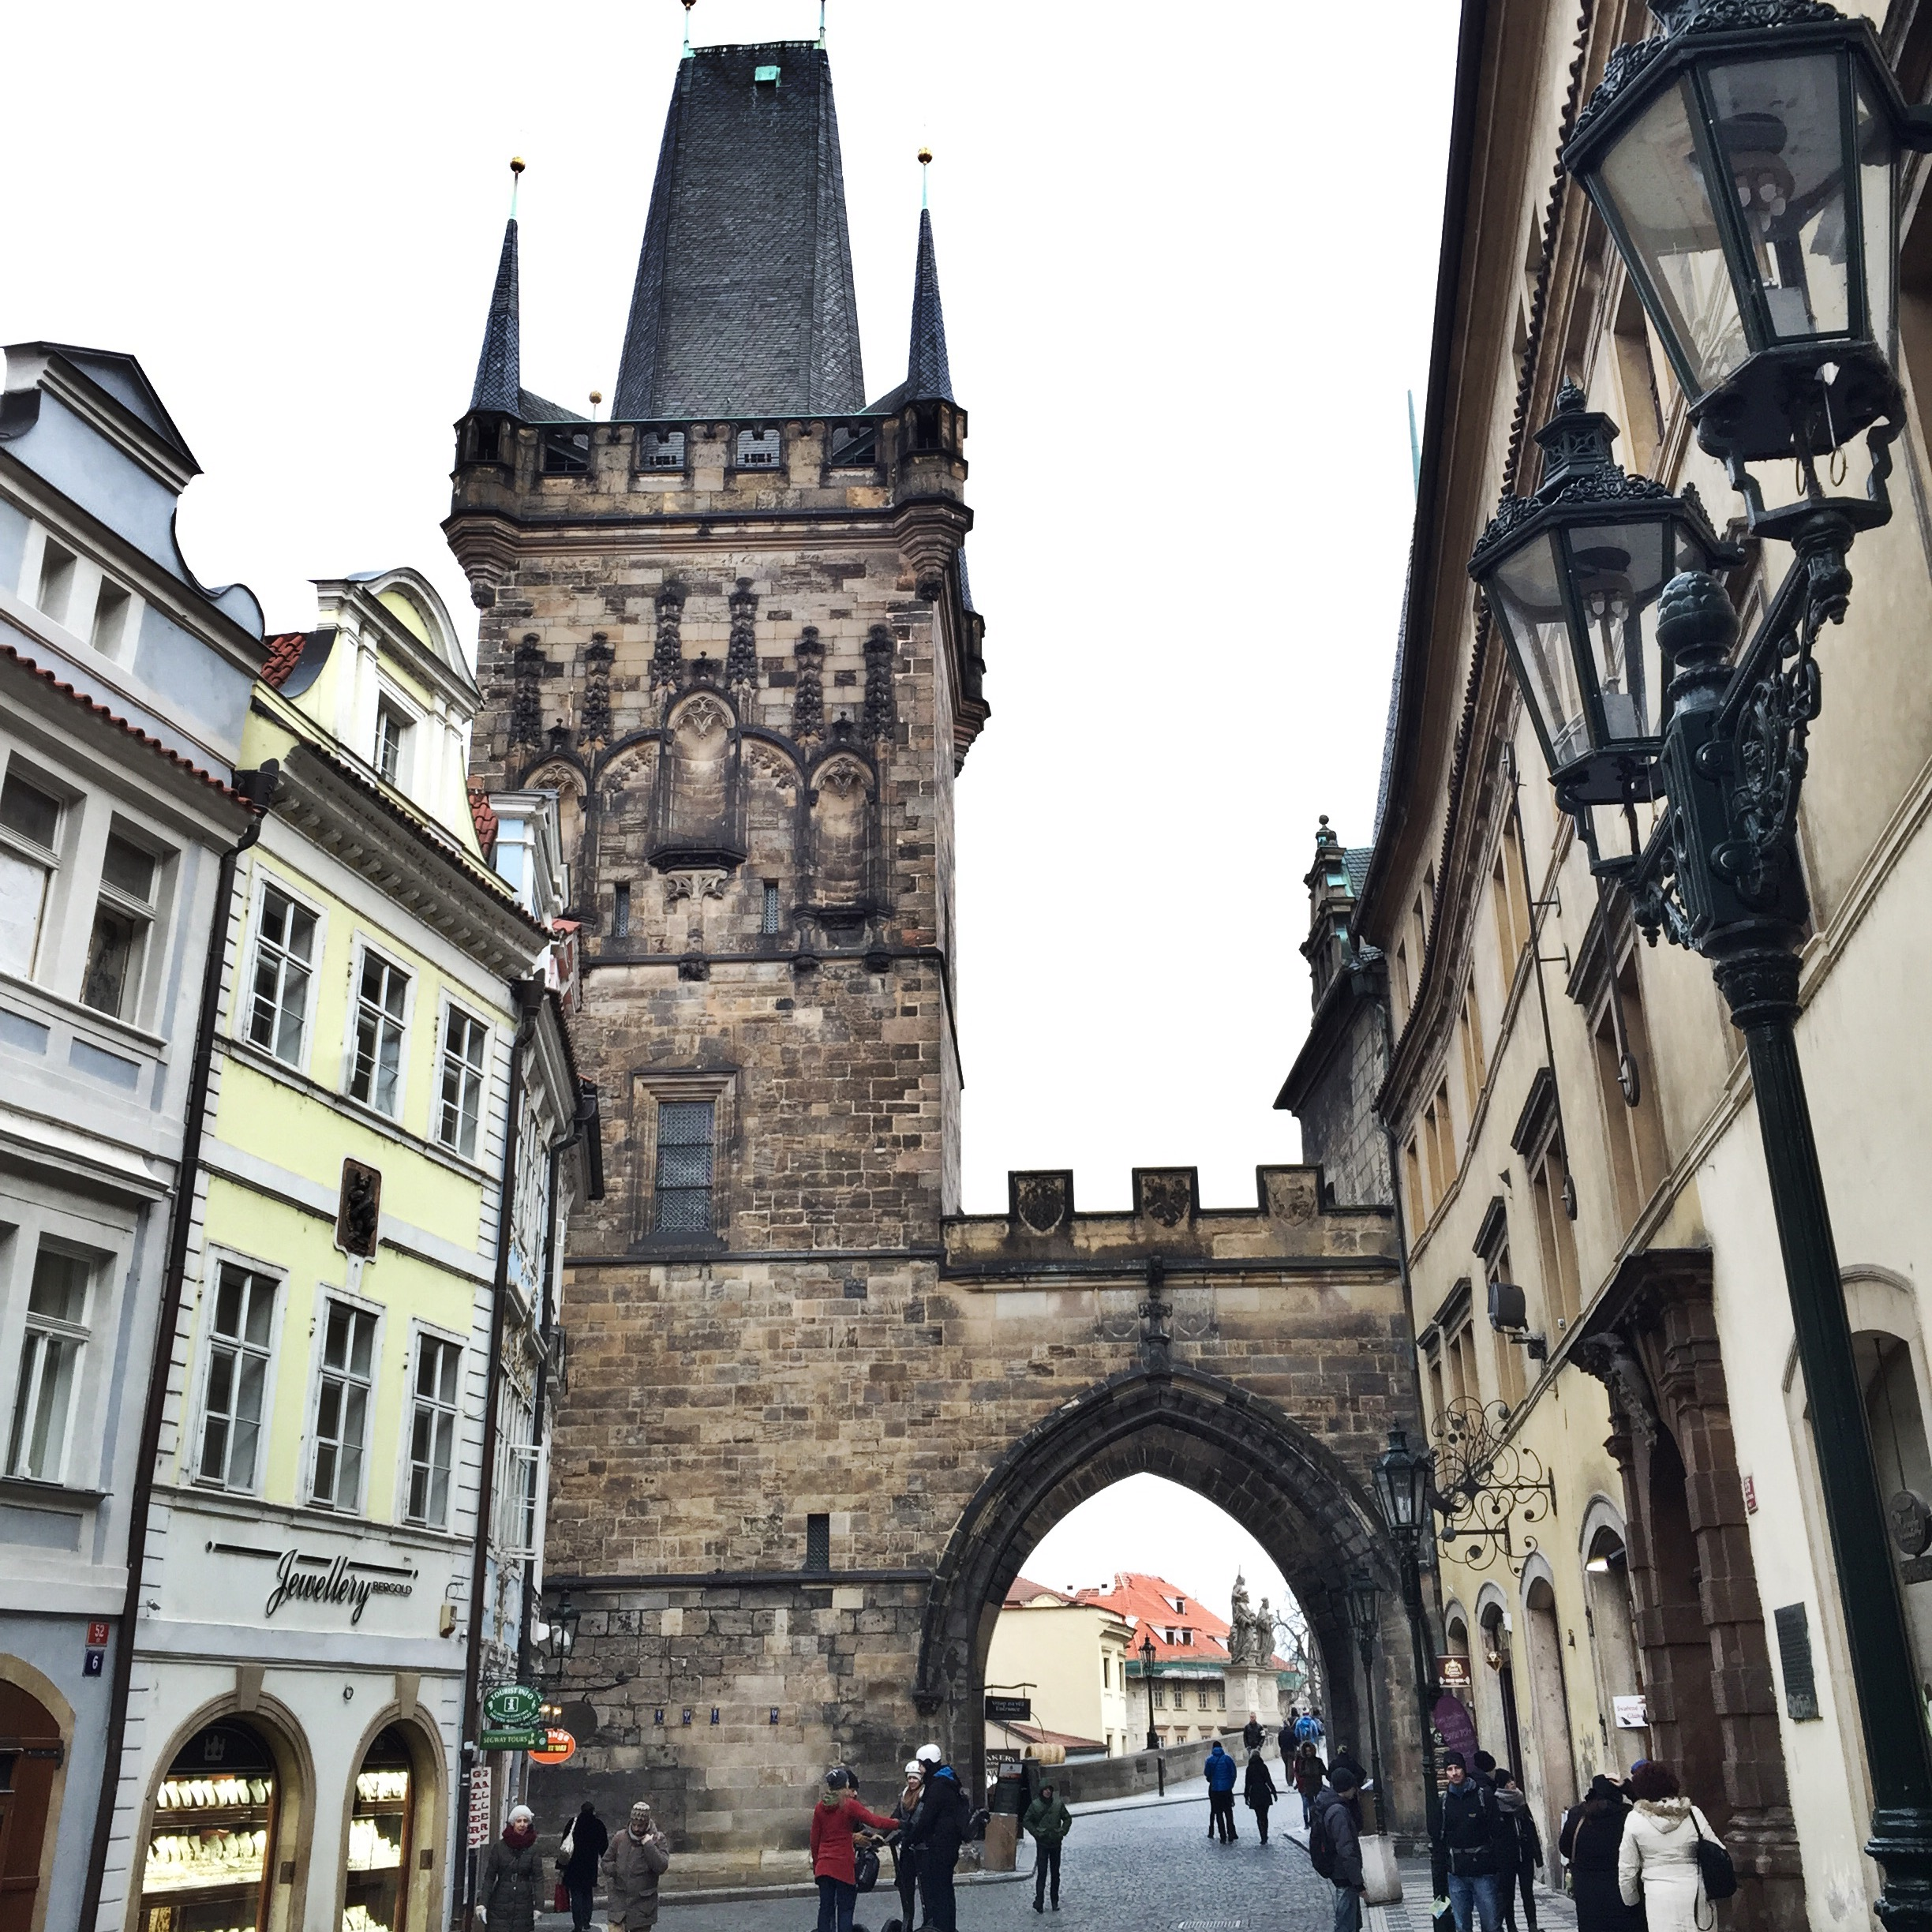 Torre da Ponte Carlos. Tower from the Charles Bridge.